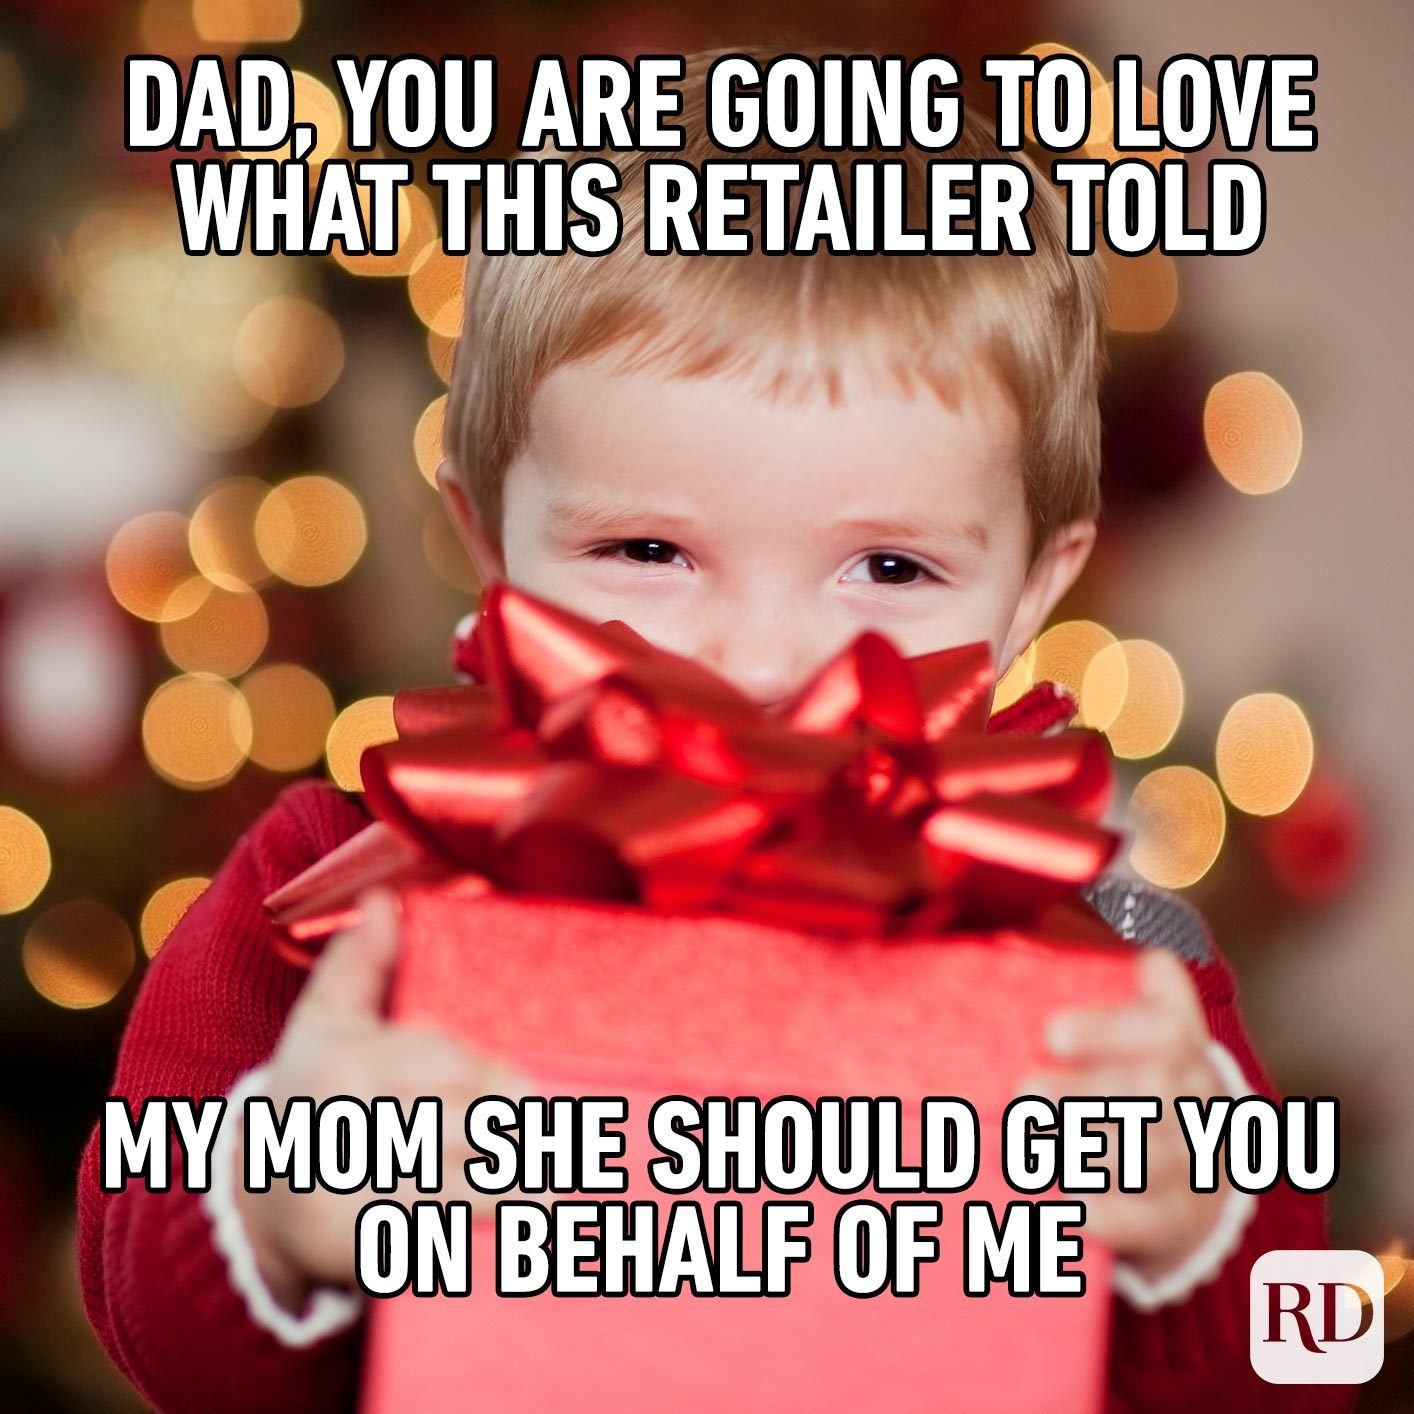 Child holding a gift. Meme text: Dad, you are going to love what this retailer told my mom she should get you on behalf of me